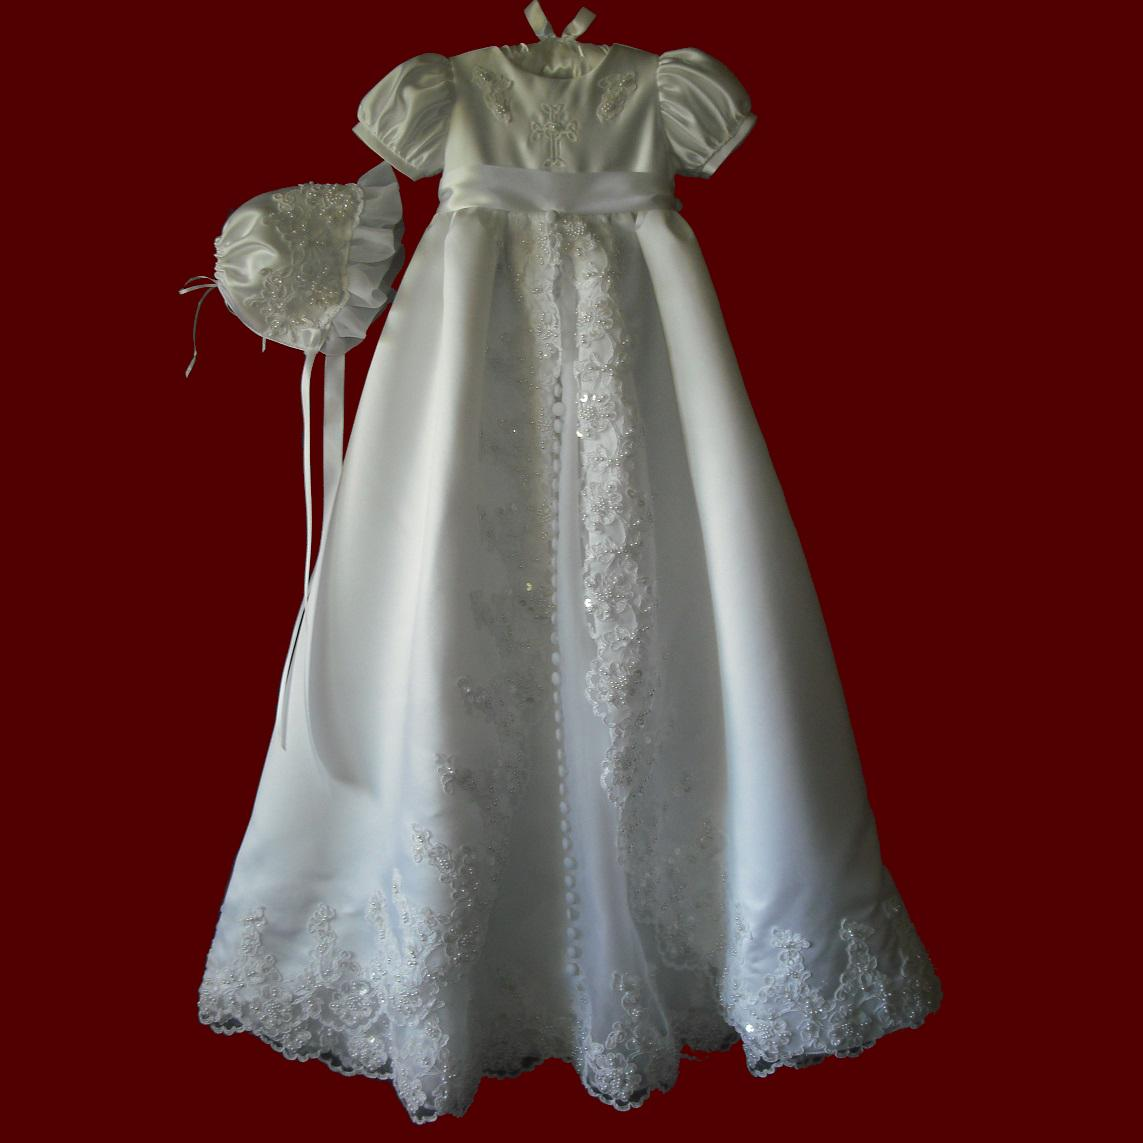 Satin & Organza Christening Gown With Beaded Lace & Embroidered Cross, Slip & Hat